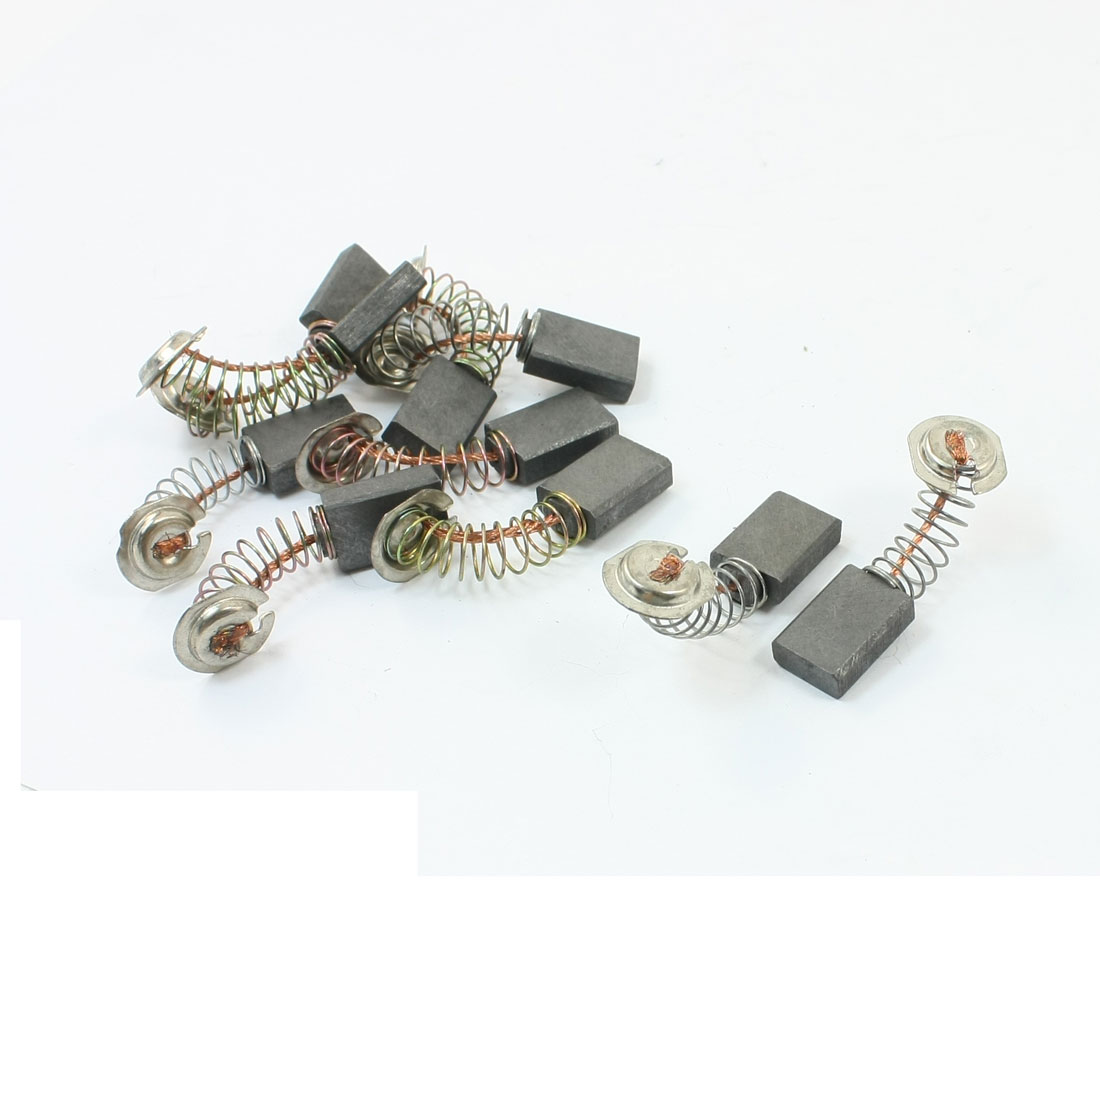 15mm x 11mm x 5mm Motor Carbon Brushes Replacement 10Pcs